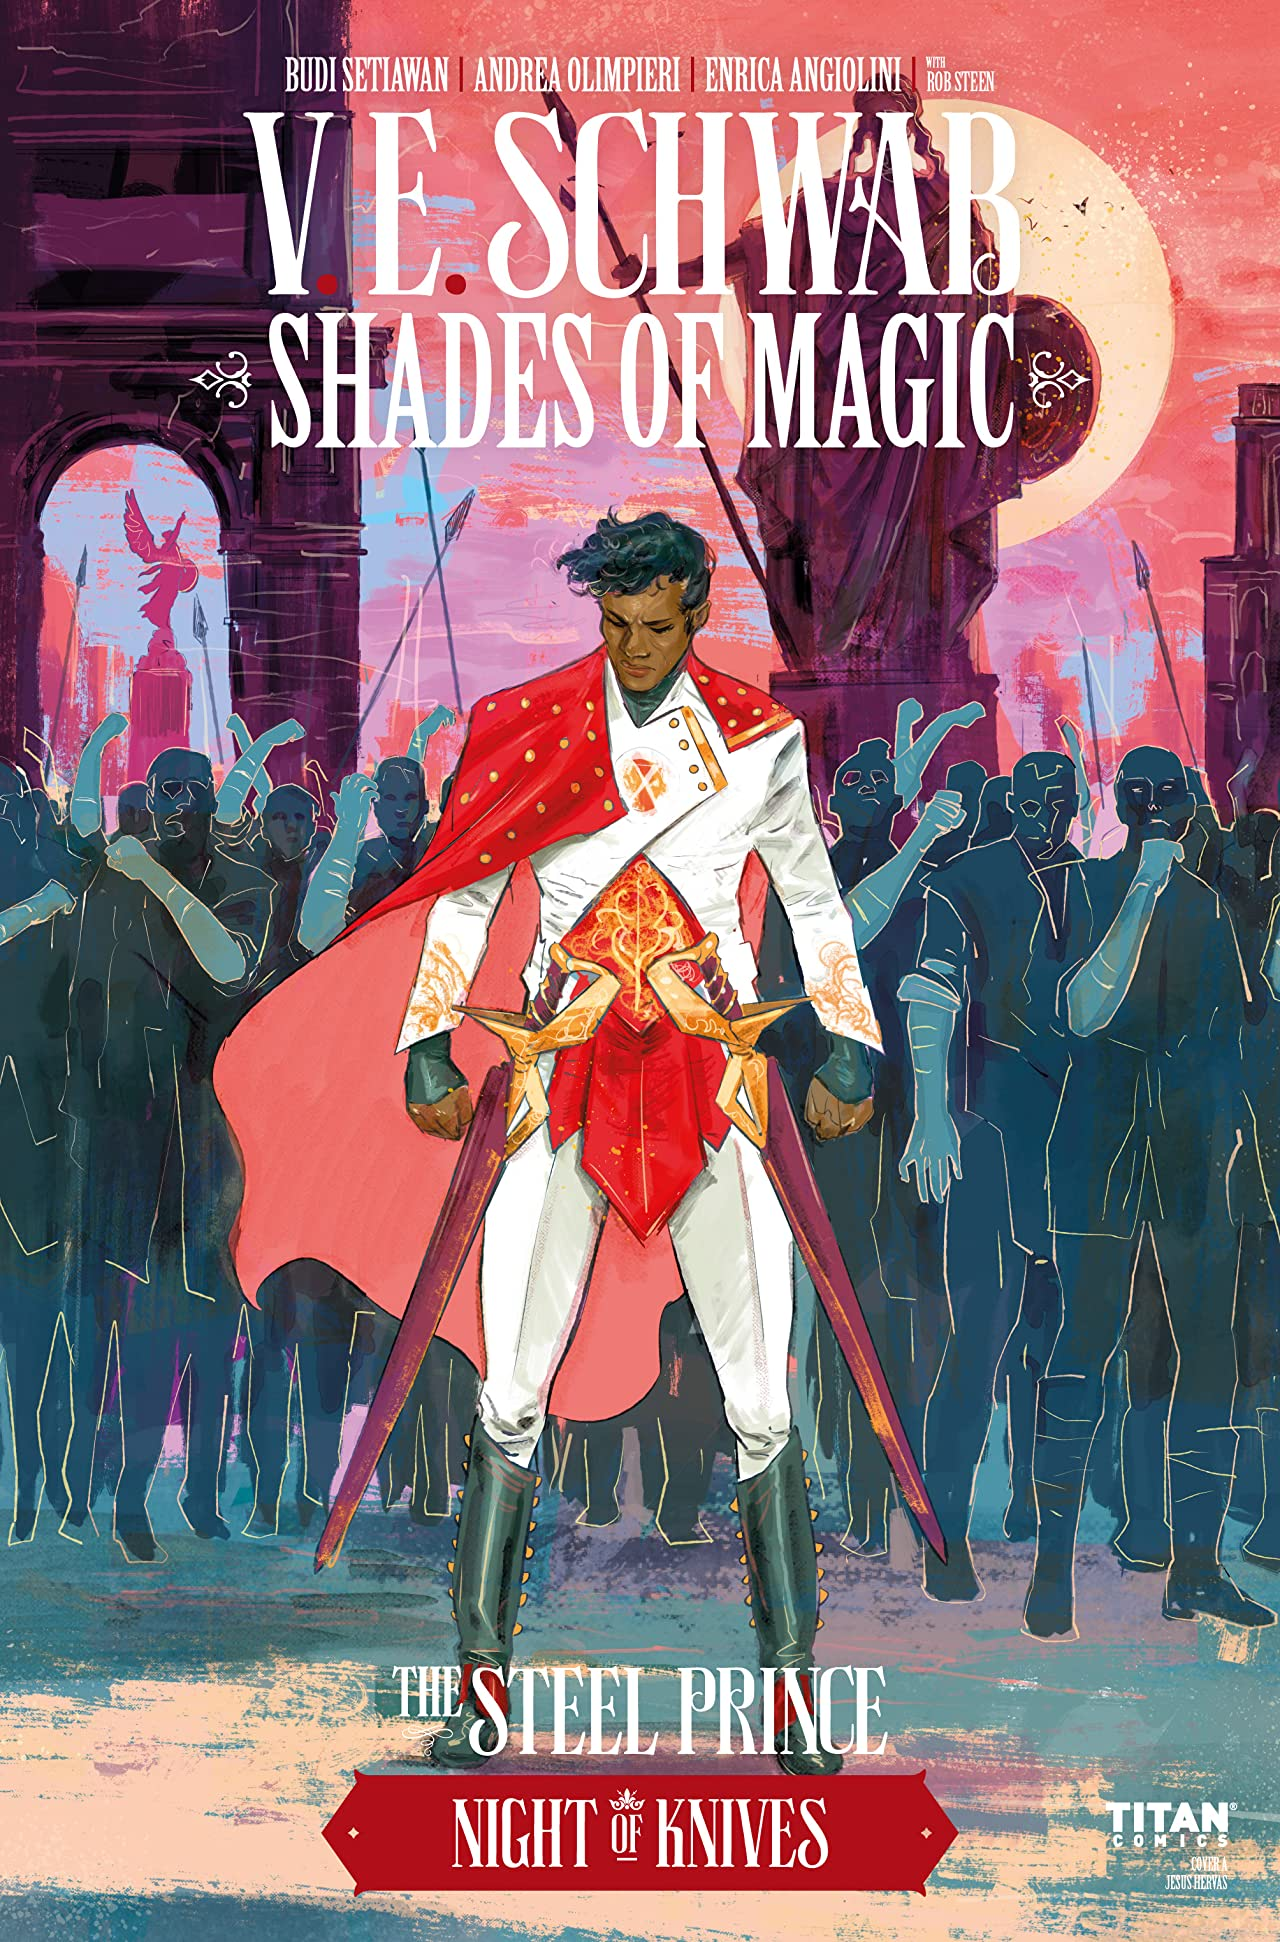 Shades of Magic: The Steel Prince #2.3: The Night of Knives